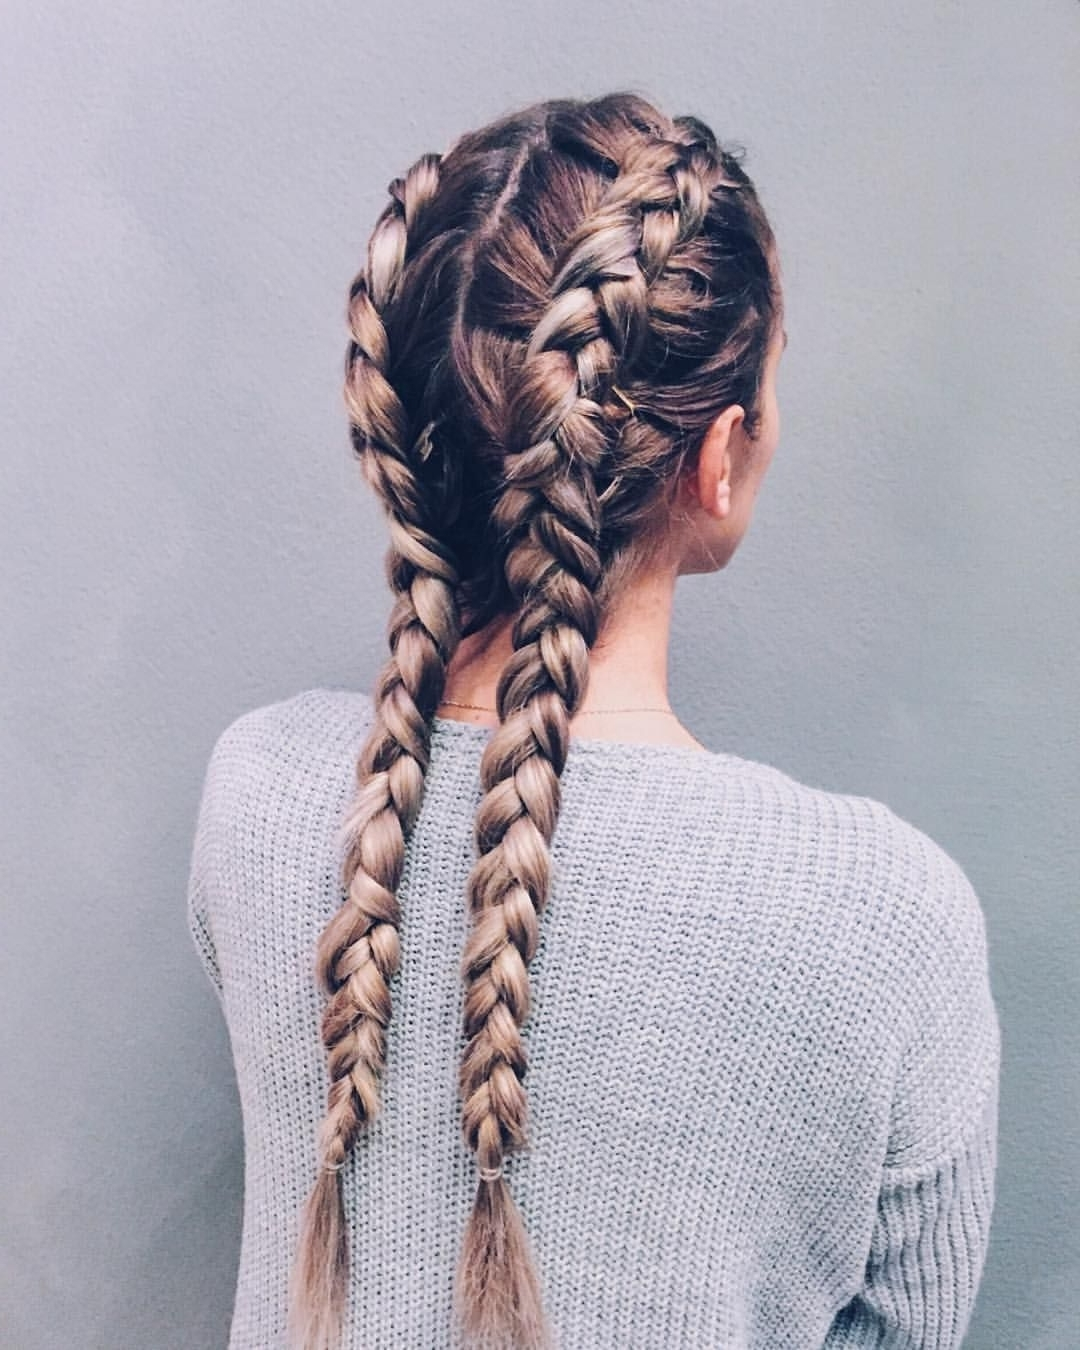 Hairstyles For Trendy Two Classic Braids Hairstyles (View 7 of 15)